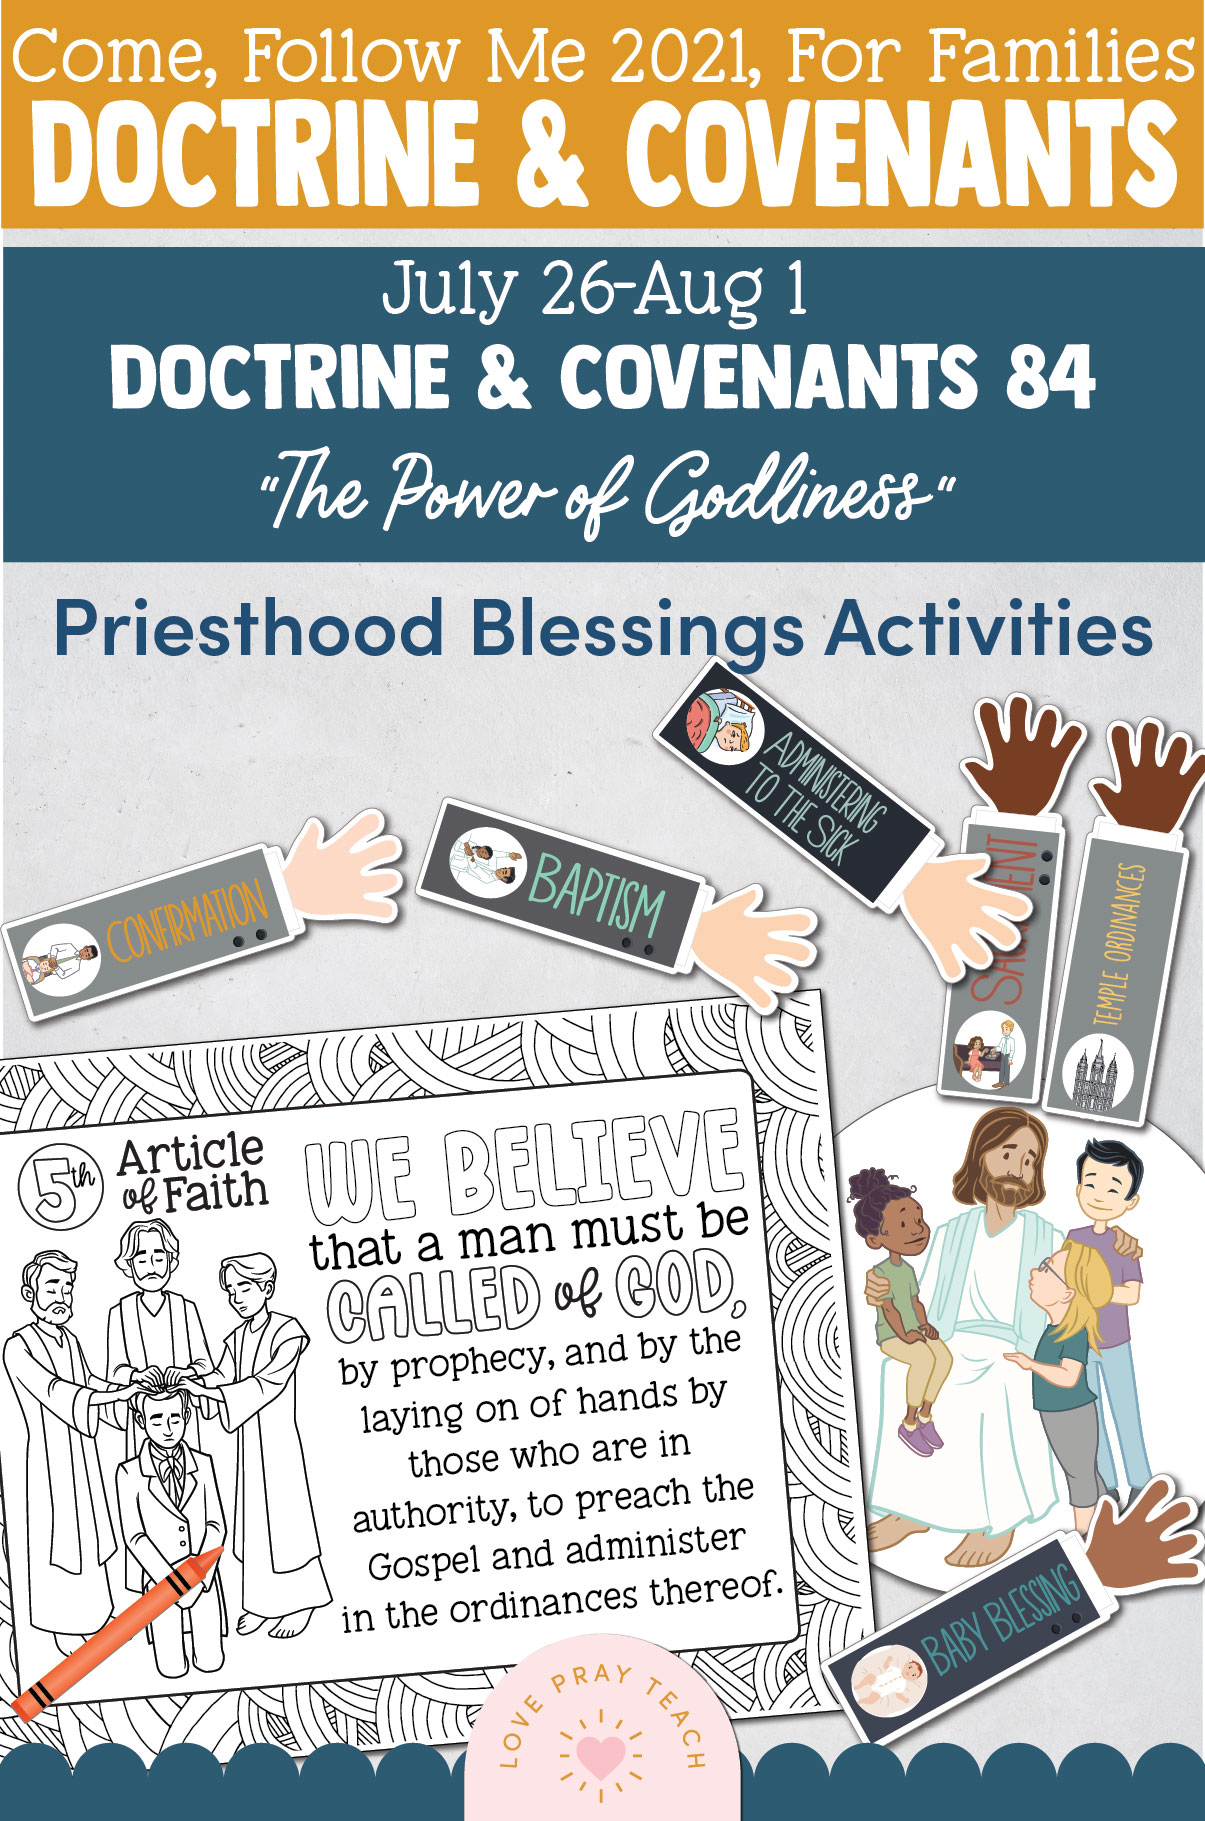 """Come, Follow Me—For Individuals and Families: Doctrine And Covenants 2021, August Week 1 Doctrine and Covenants 84: July 26-August 1, """"The Power of Godliness"""""""